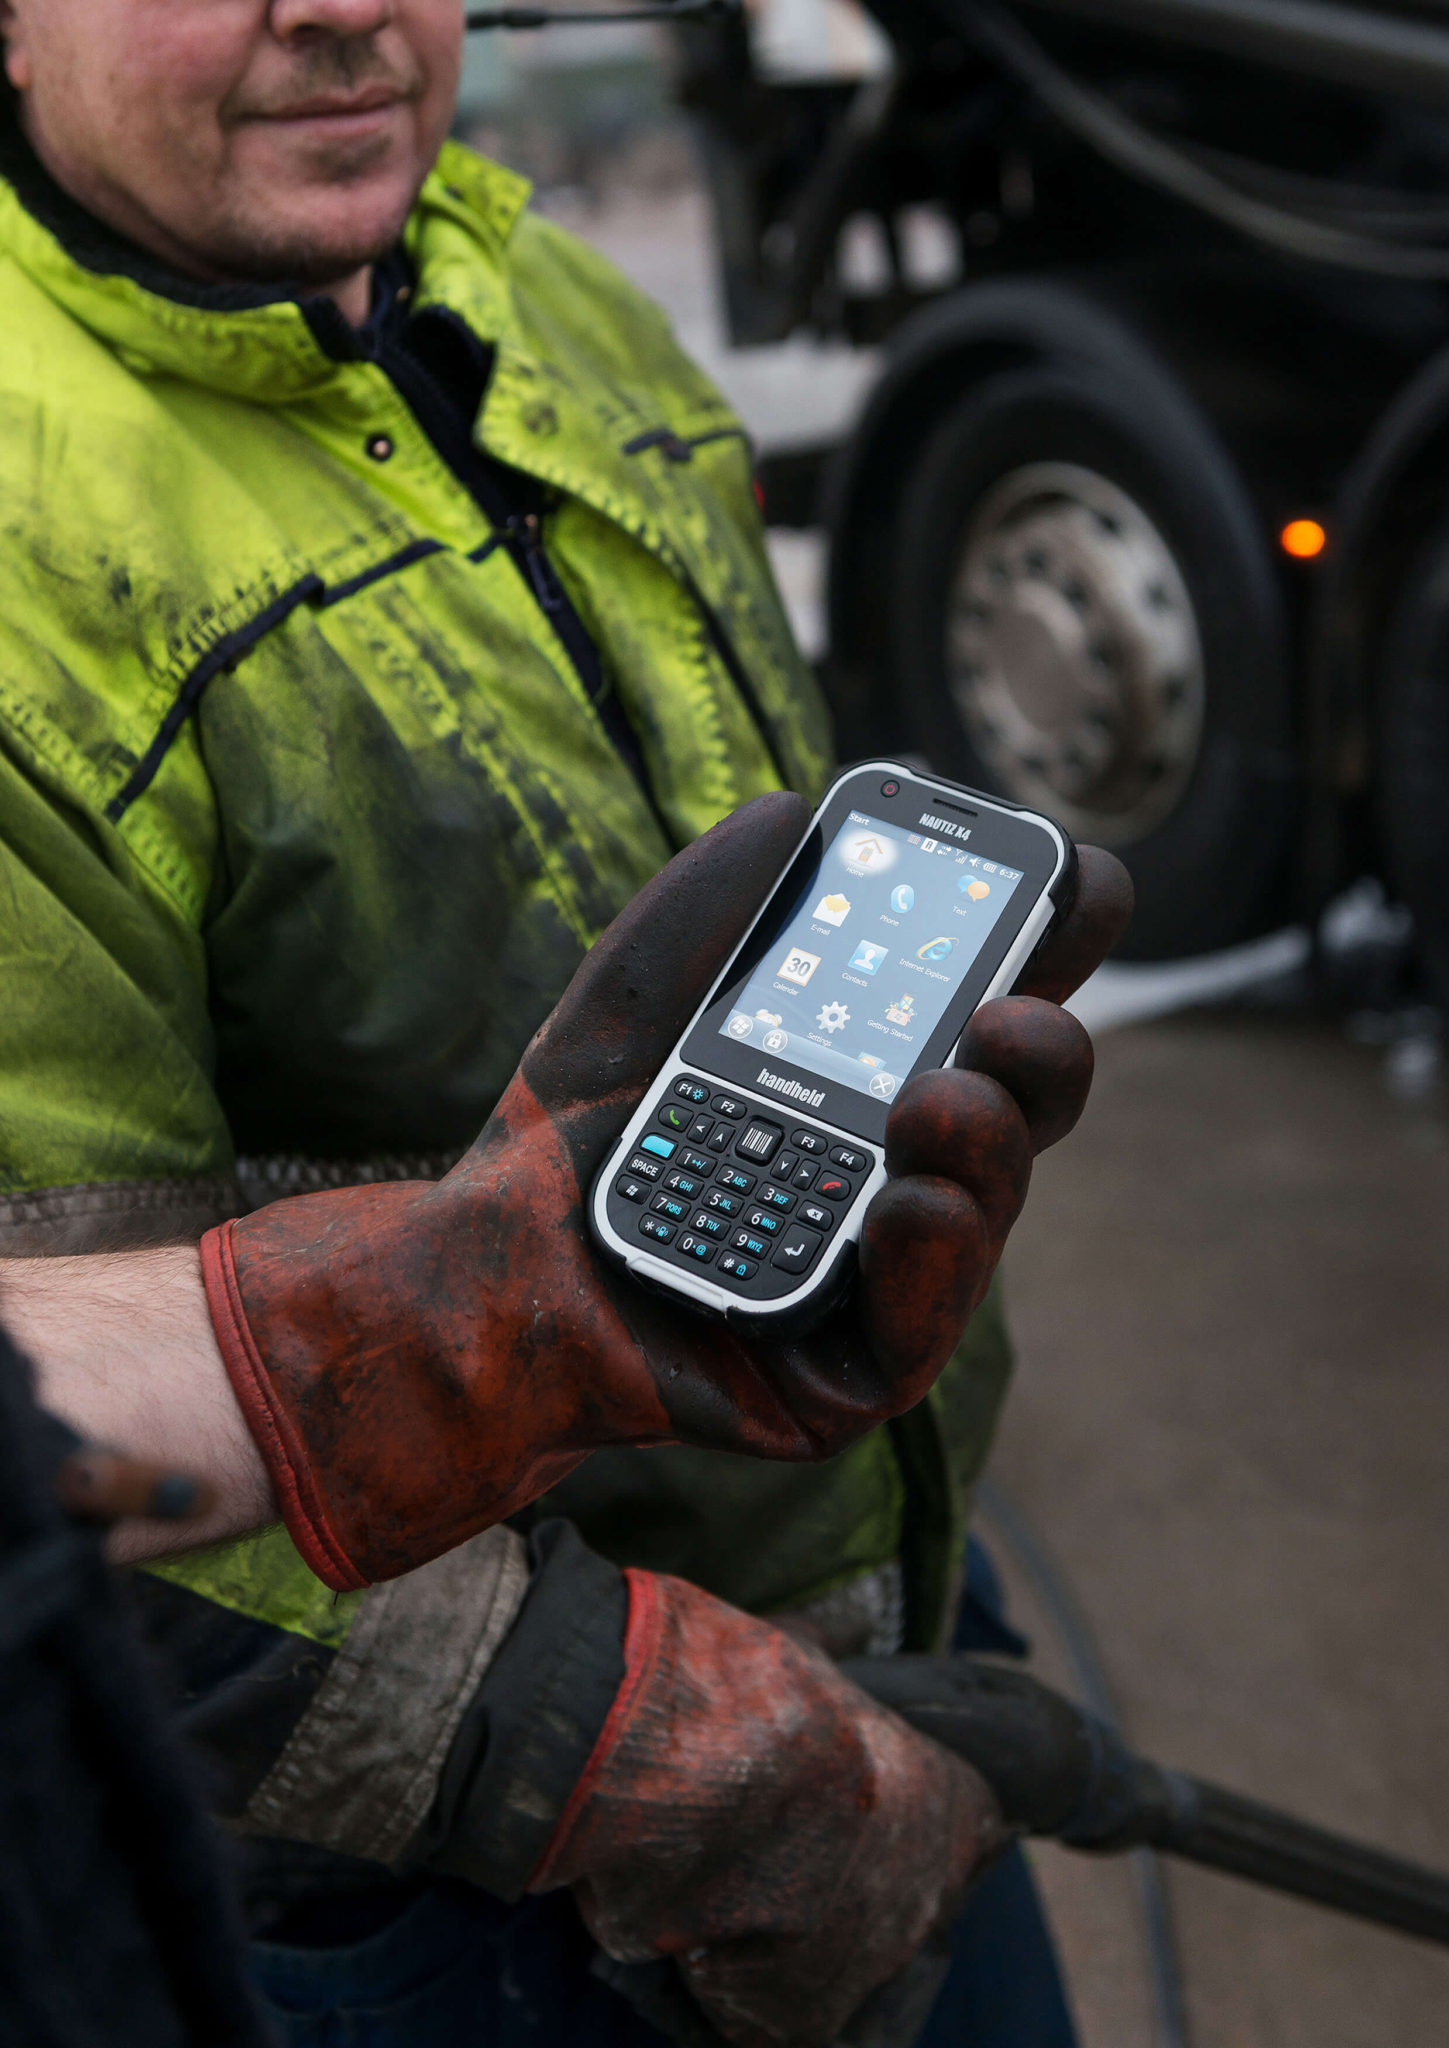 nautiz-x4-handheld-rugged-ip65-outdoor-fieldwork